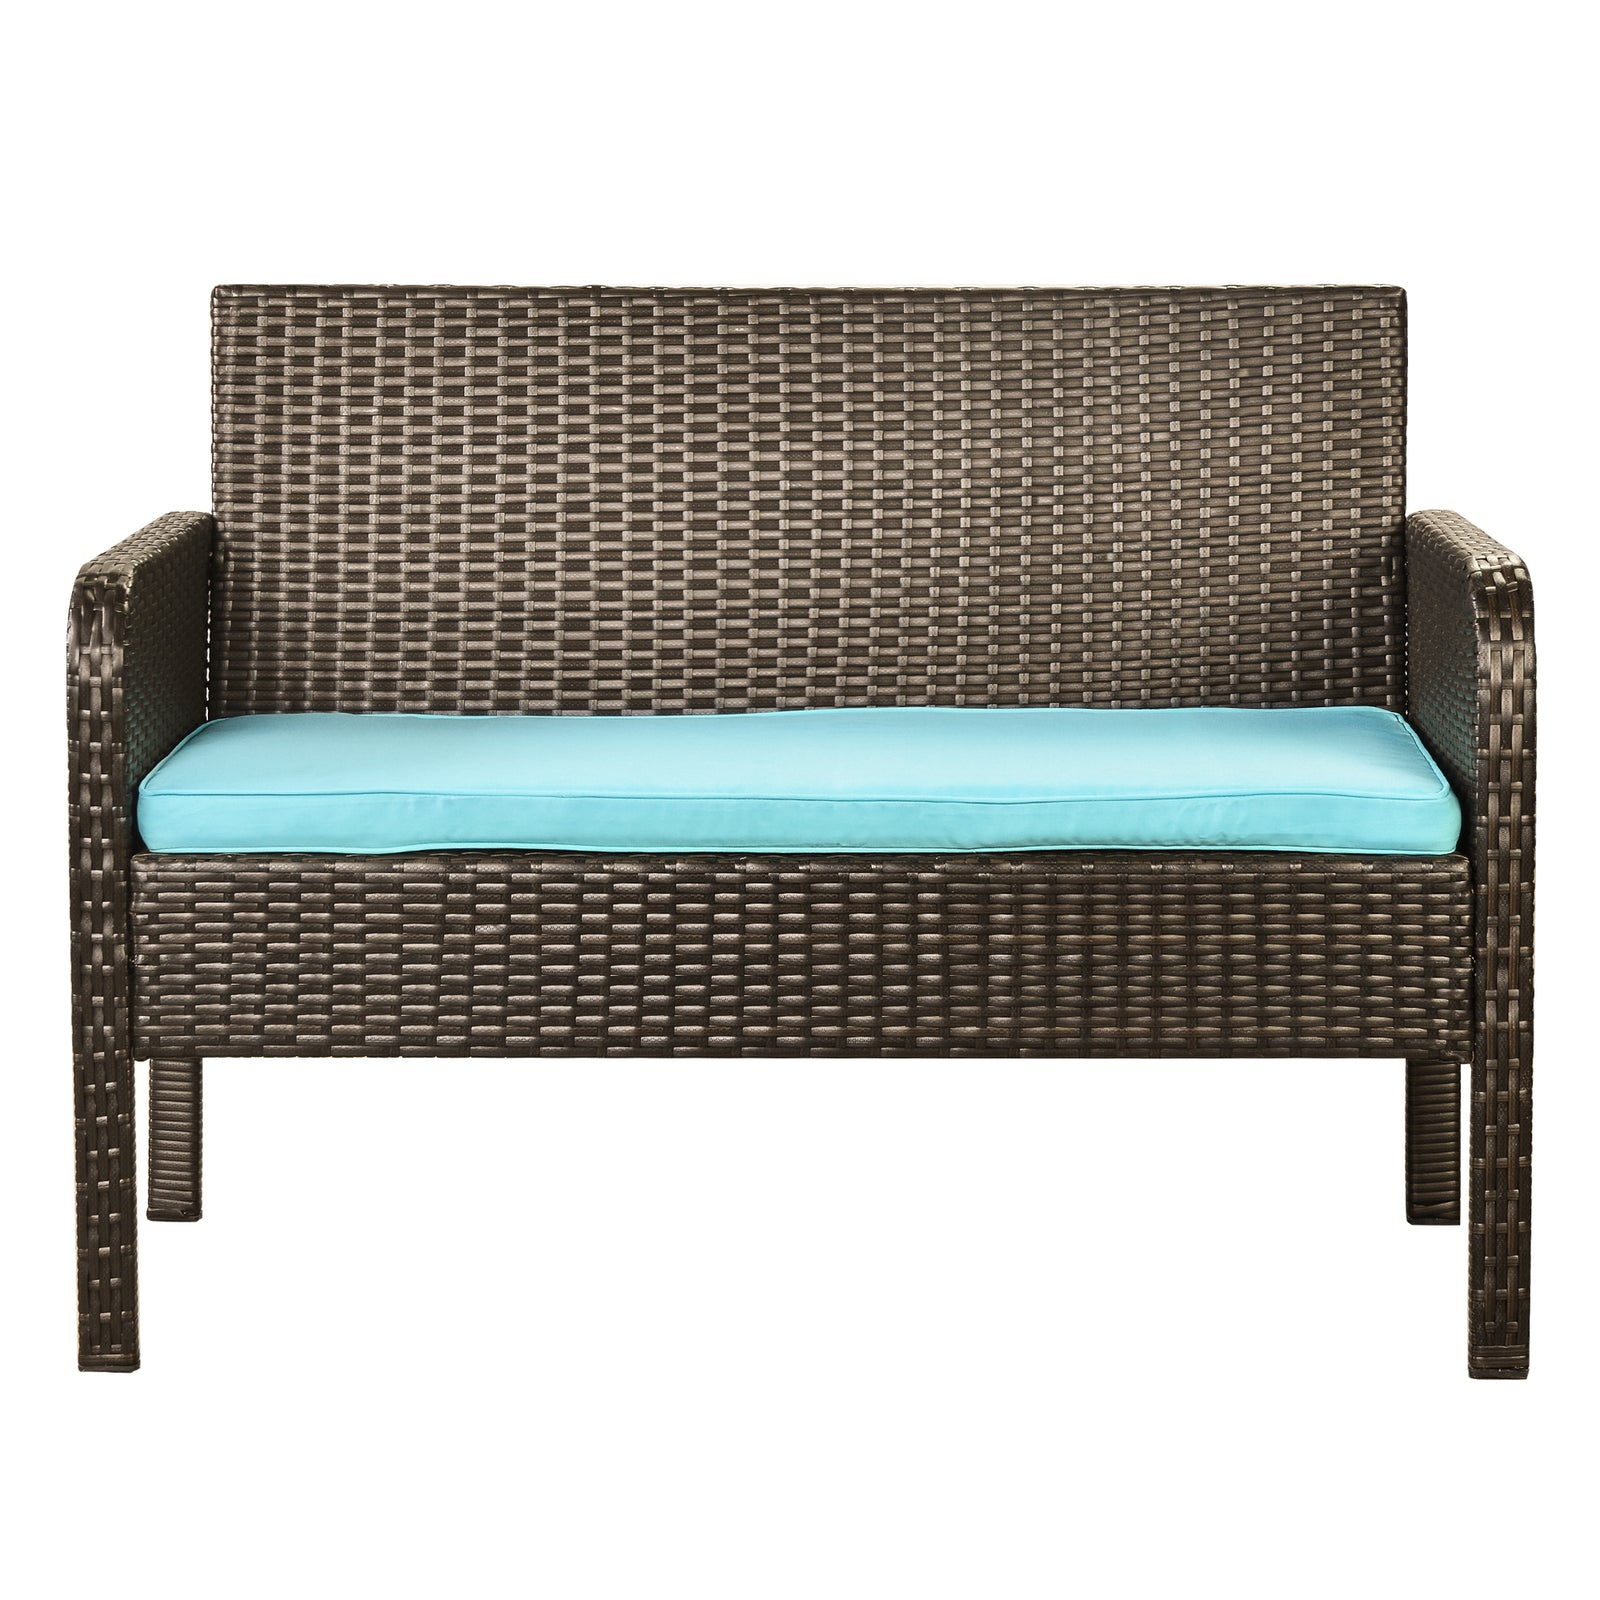 4 Counts - Rattan Sofa Seating Group with Cushions, Outdoor Rattan sofa Blue - Loveseat